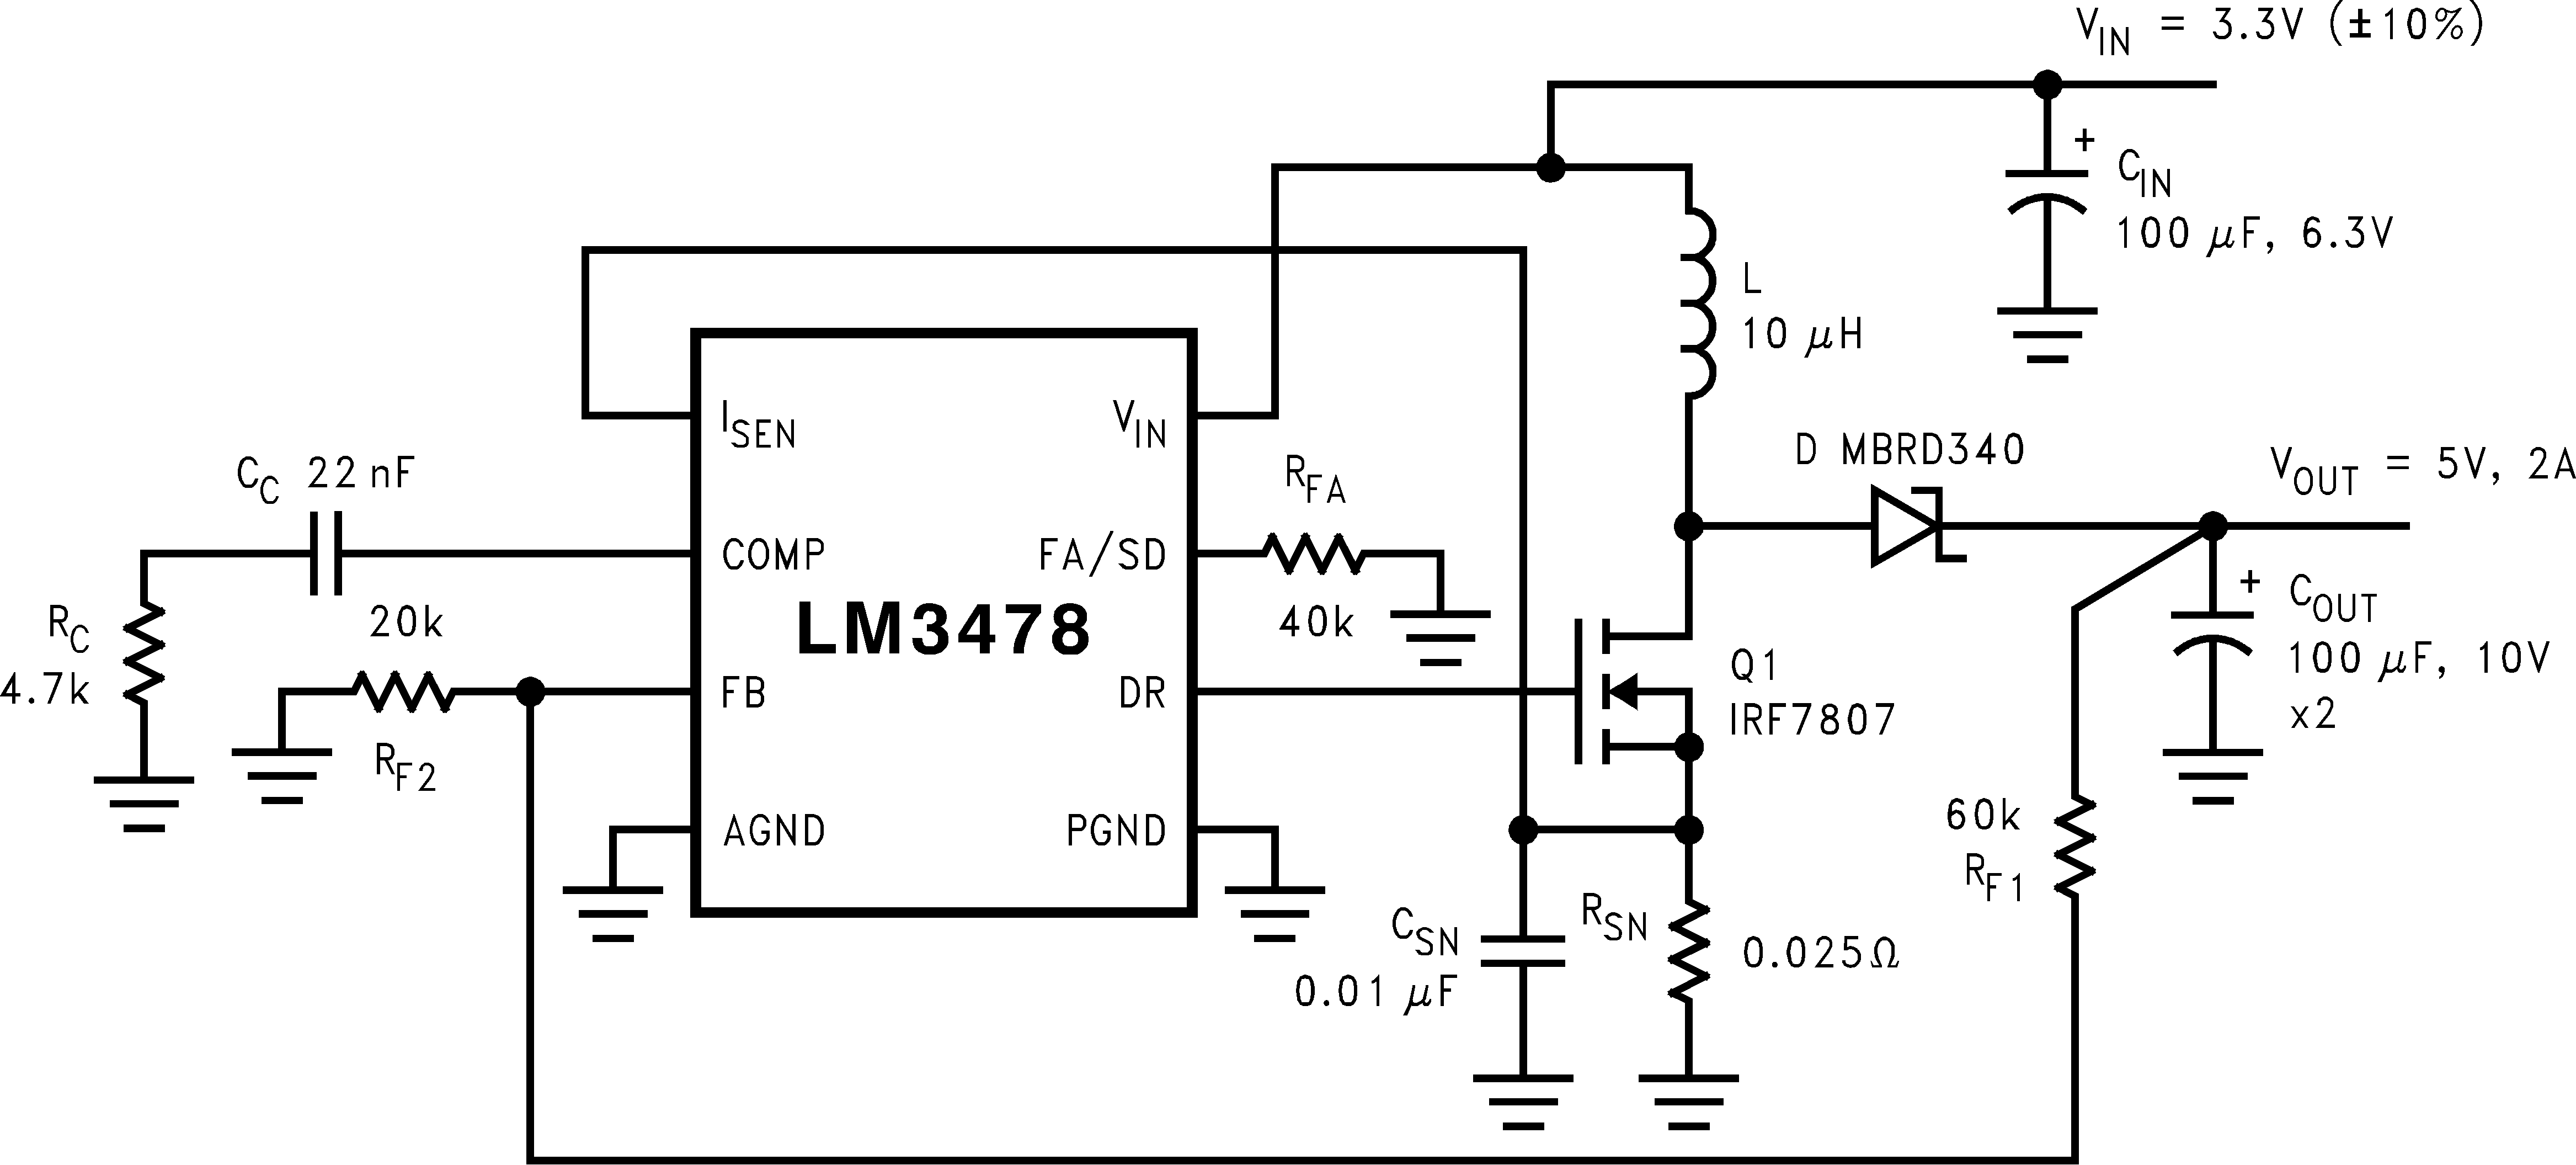 Lm3478 Circuits Charging A 500 F Capacitor It Charges Up 821 Typical High Efficiency Step Boost Converter